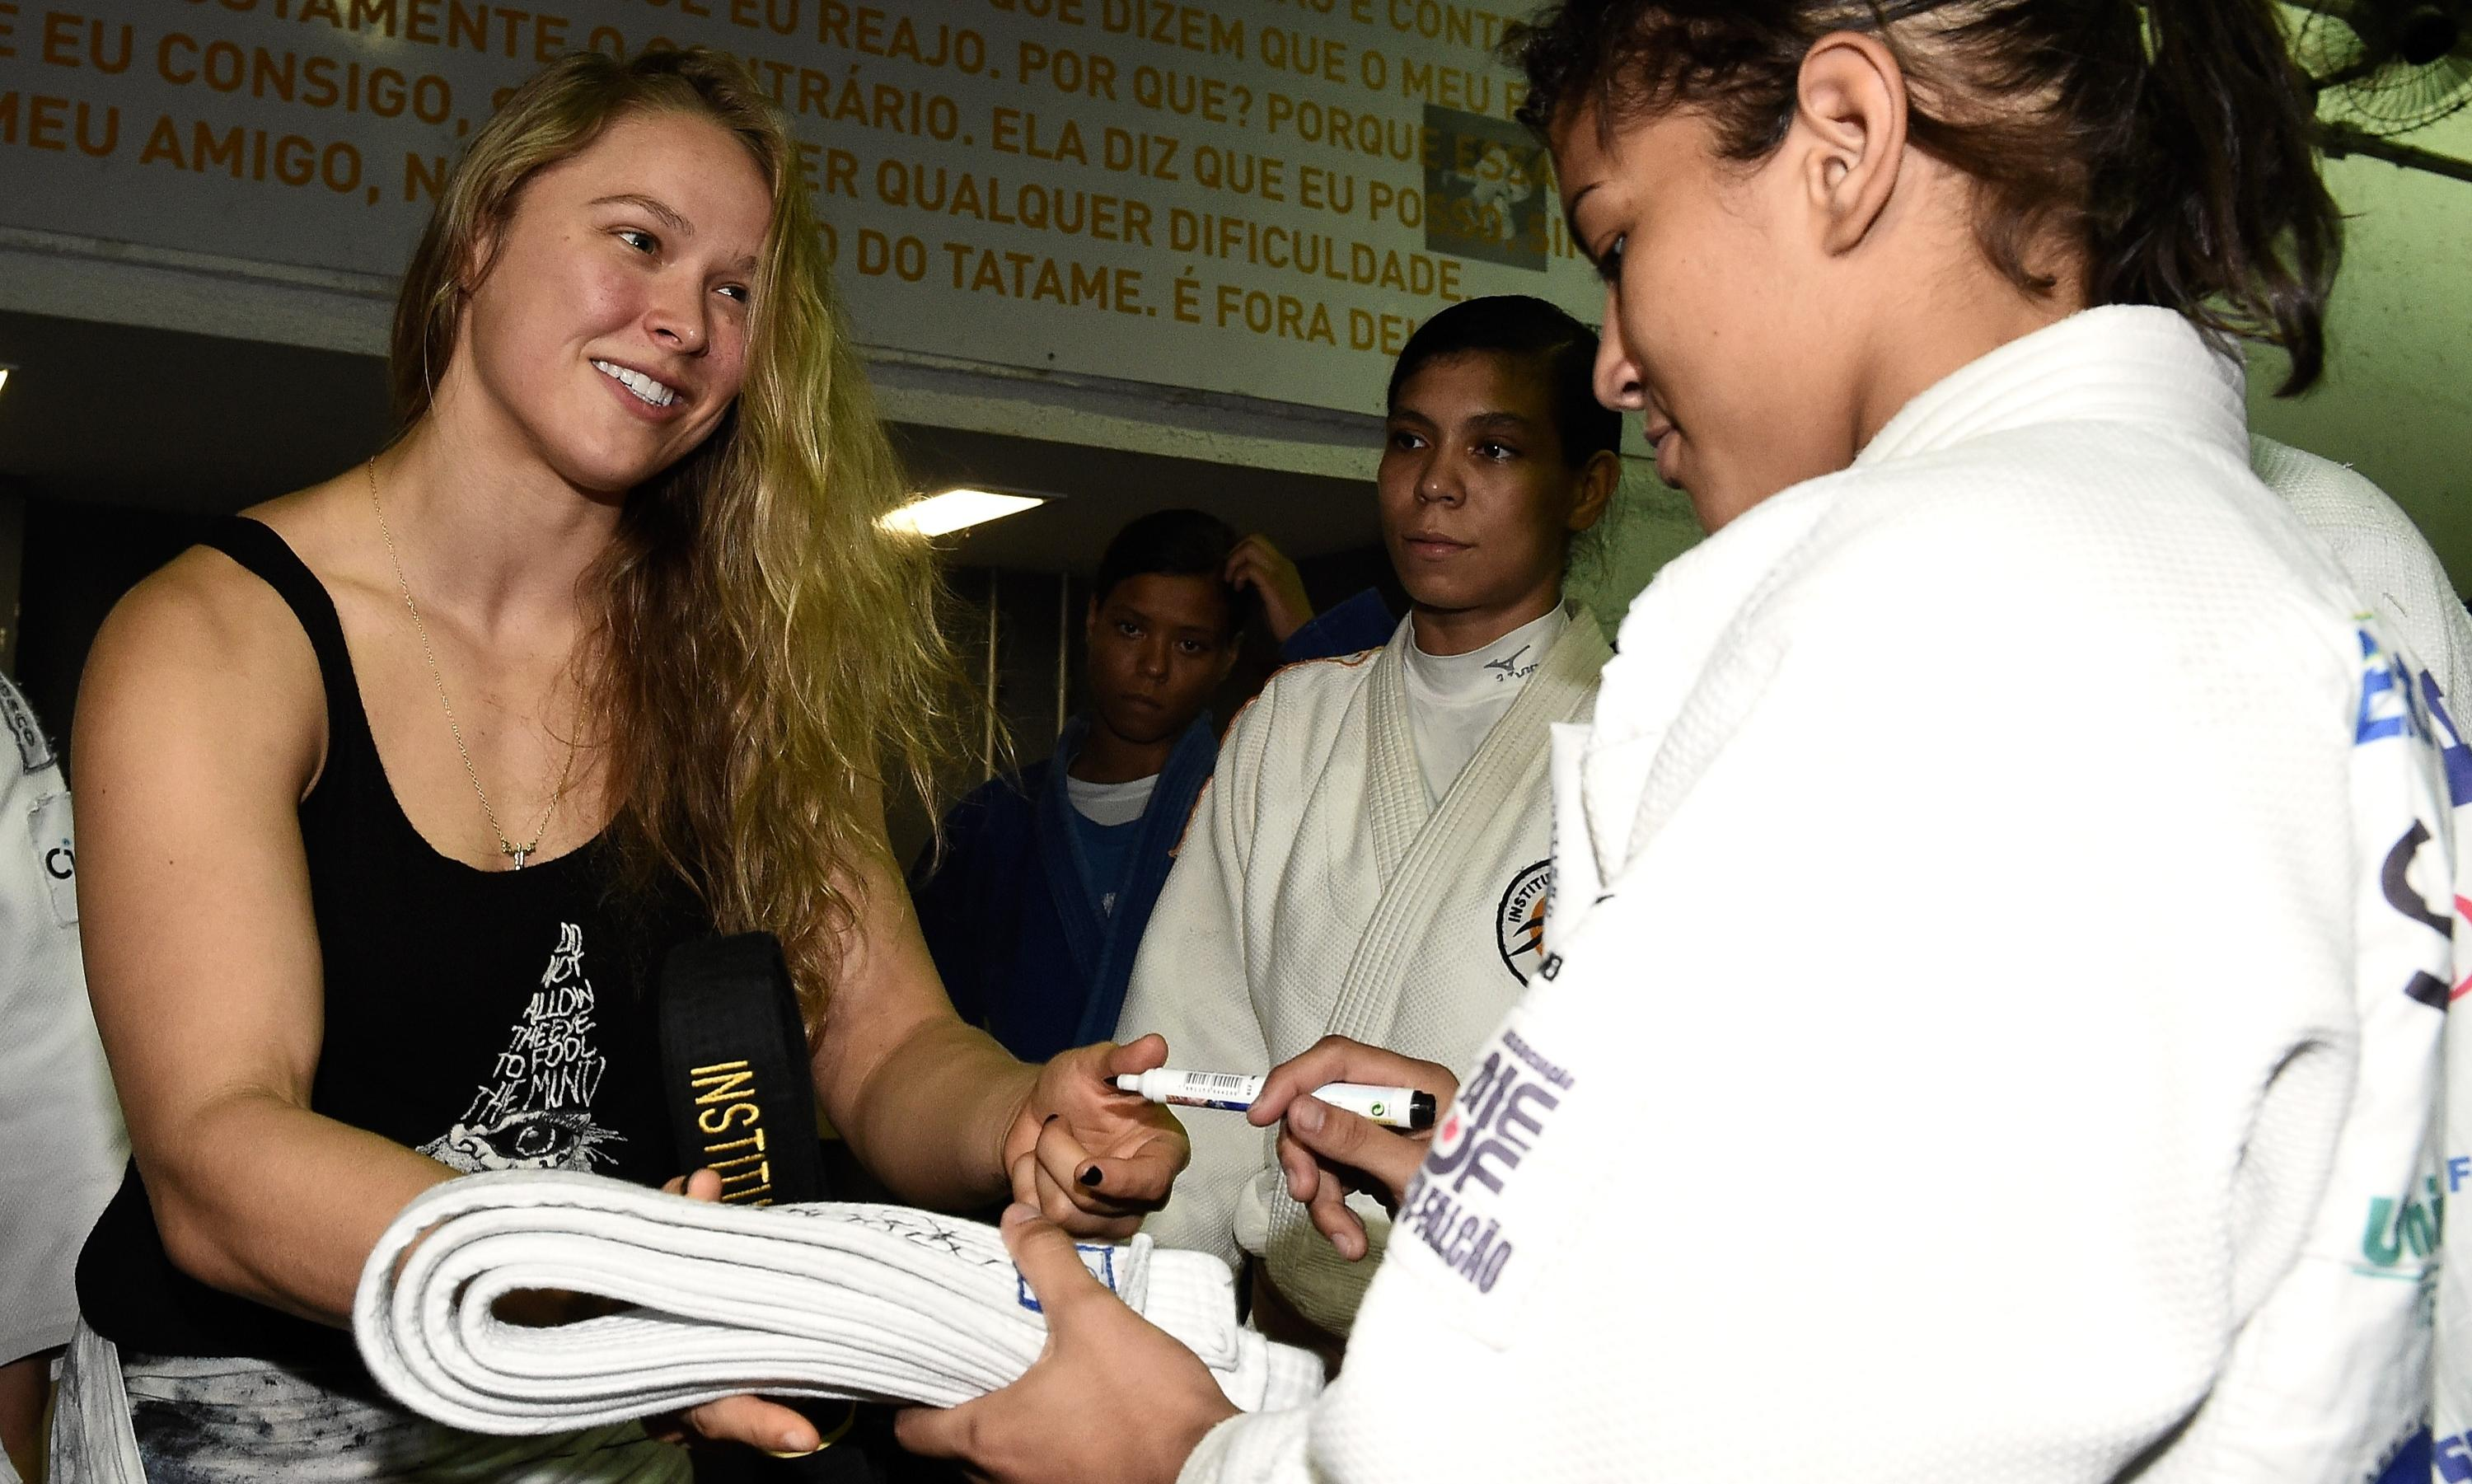 Ronda Rousey jabs Floyd Mayweather again: I earn more than you per second